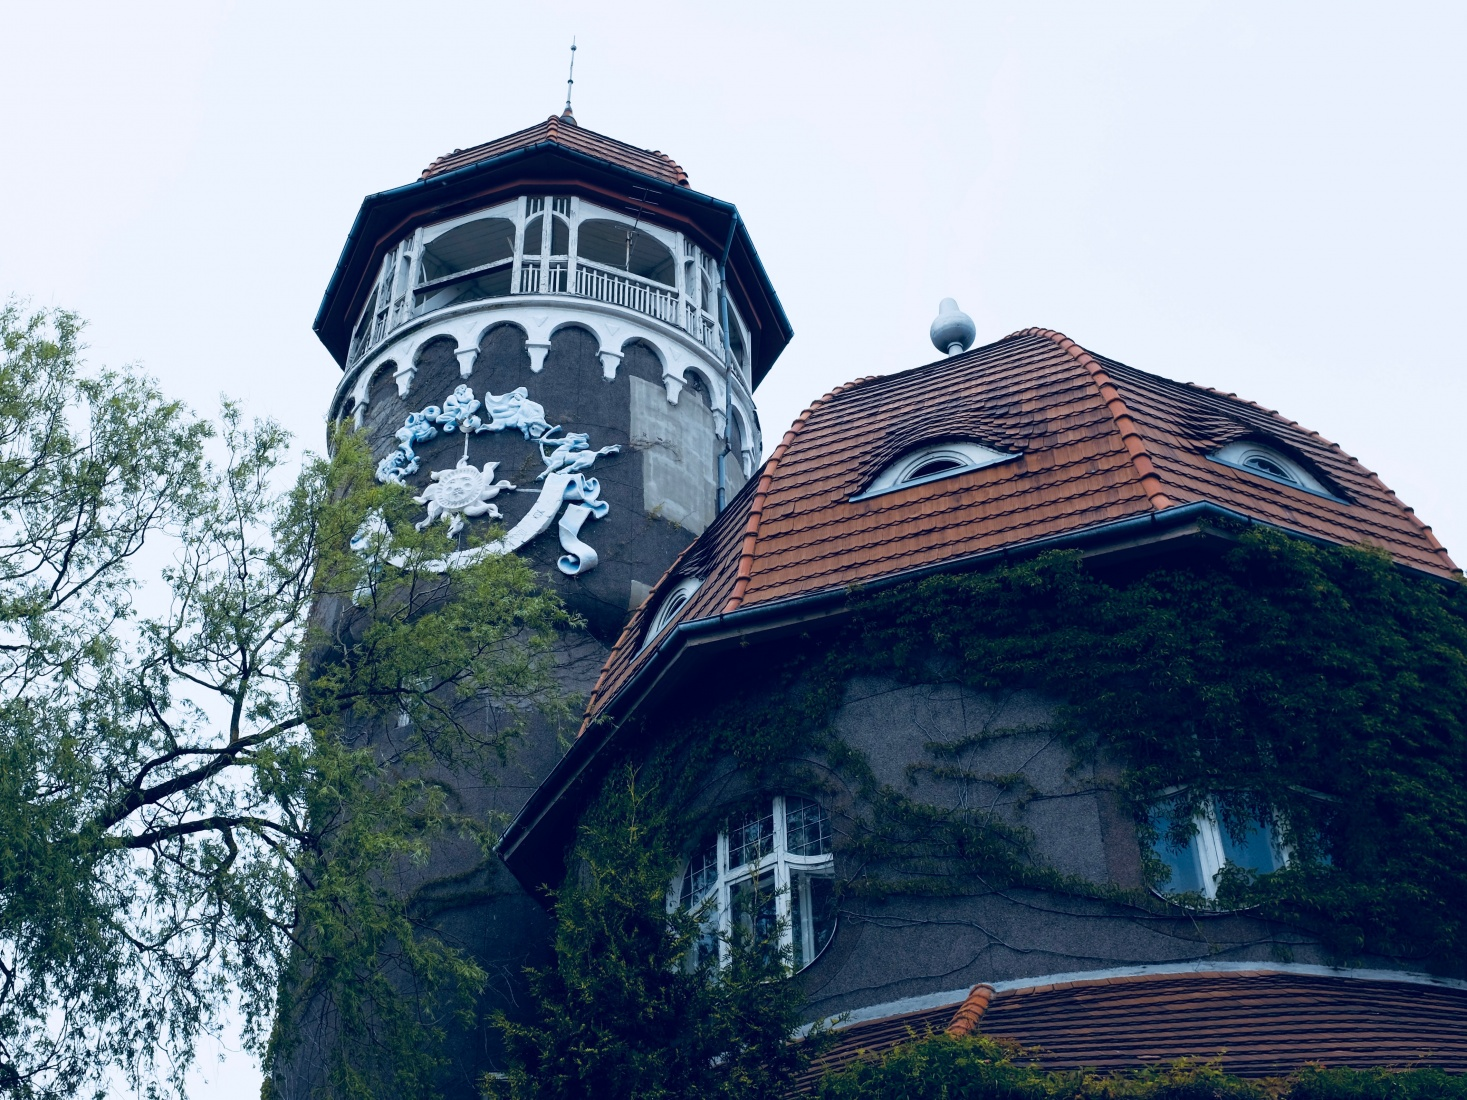 The old fin de siècle Water Tower in Svetlogorsk, displaying Art Nouveau influence, near Kaliningrad, Russia.